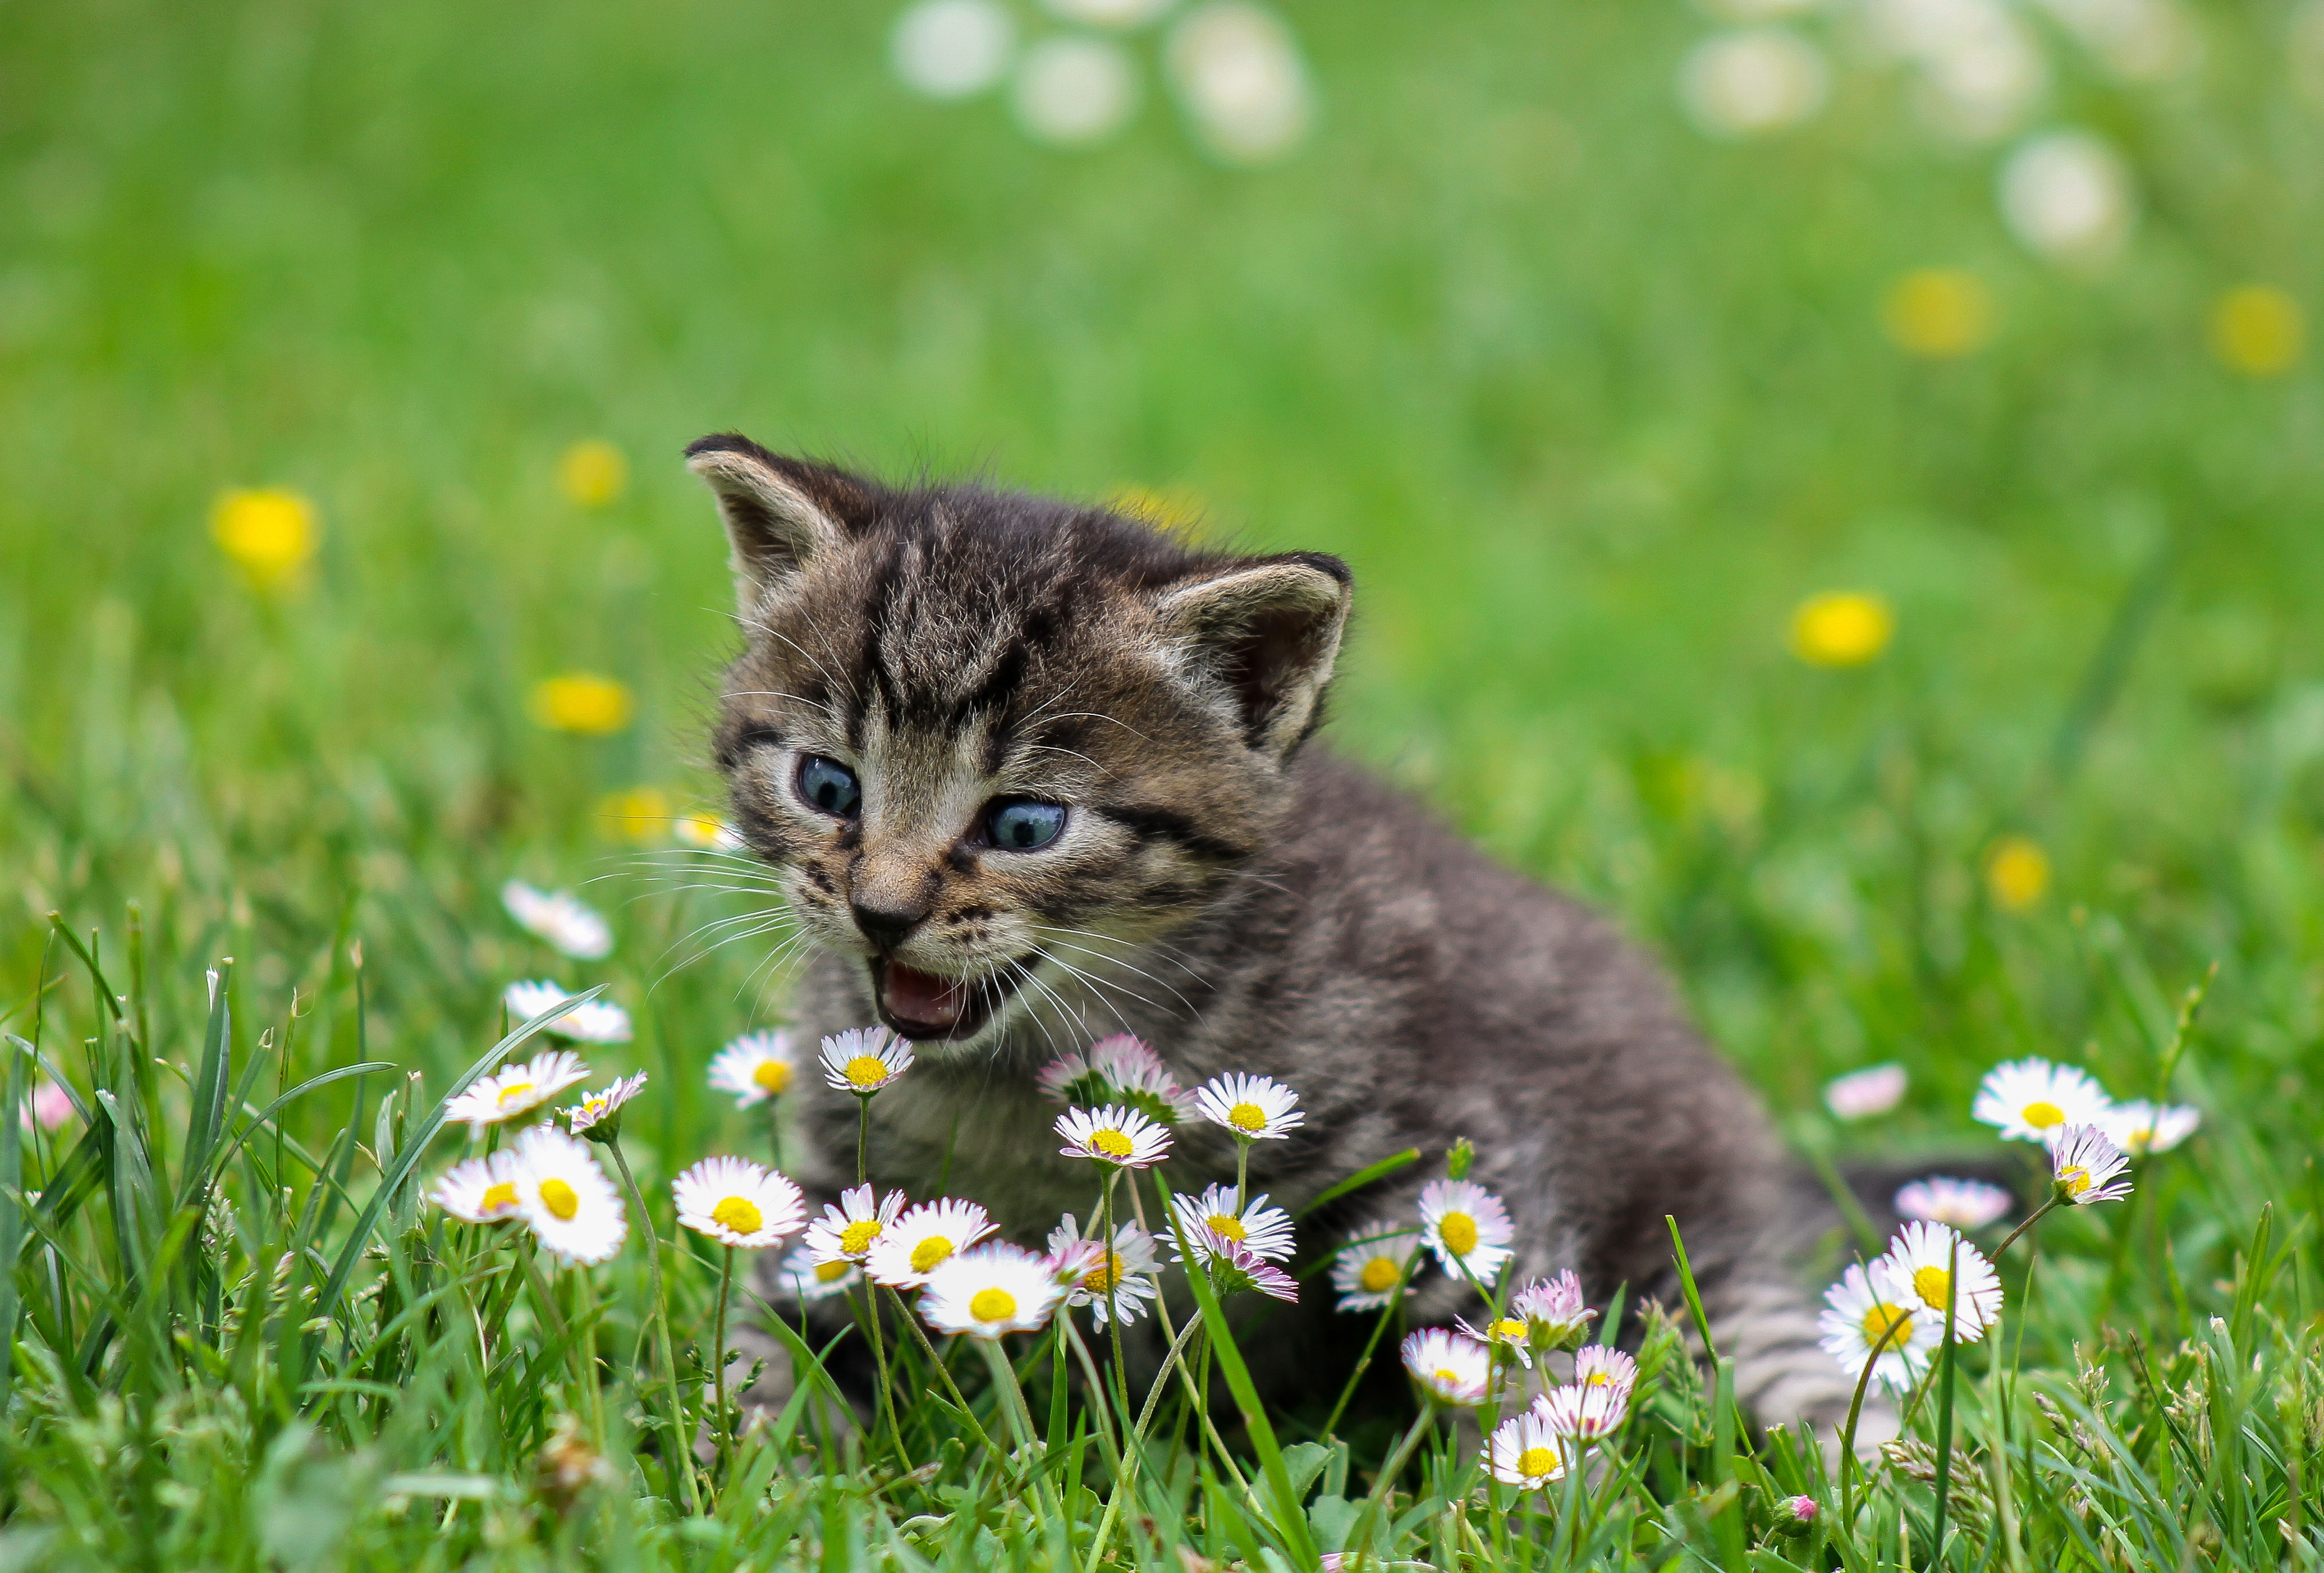 121535 download wallpaper Animals, Kitty, Kitten, Funny, Nice, Sweetheart, Surprise, Astonishment, Stroll, Flowers screensavers and pictures for free